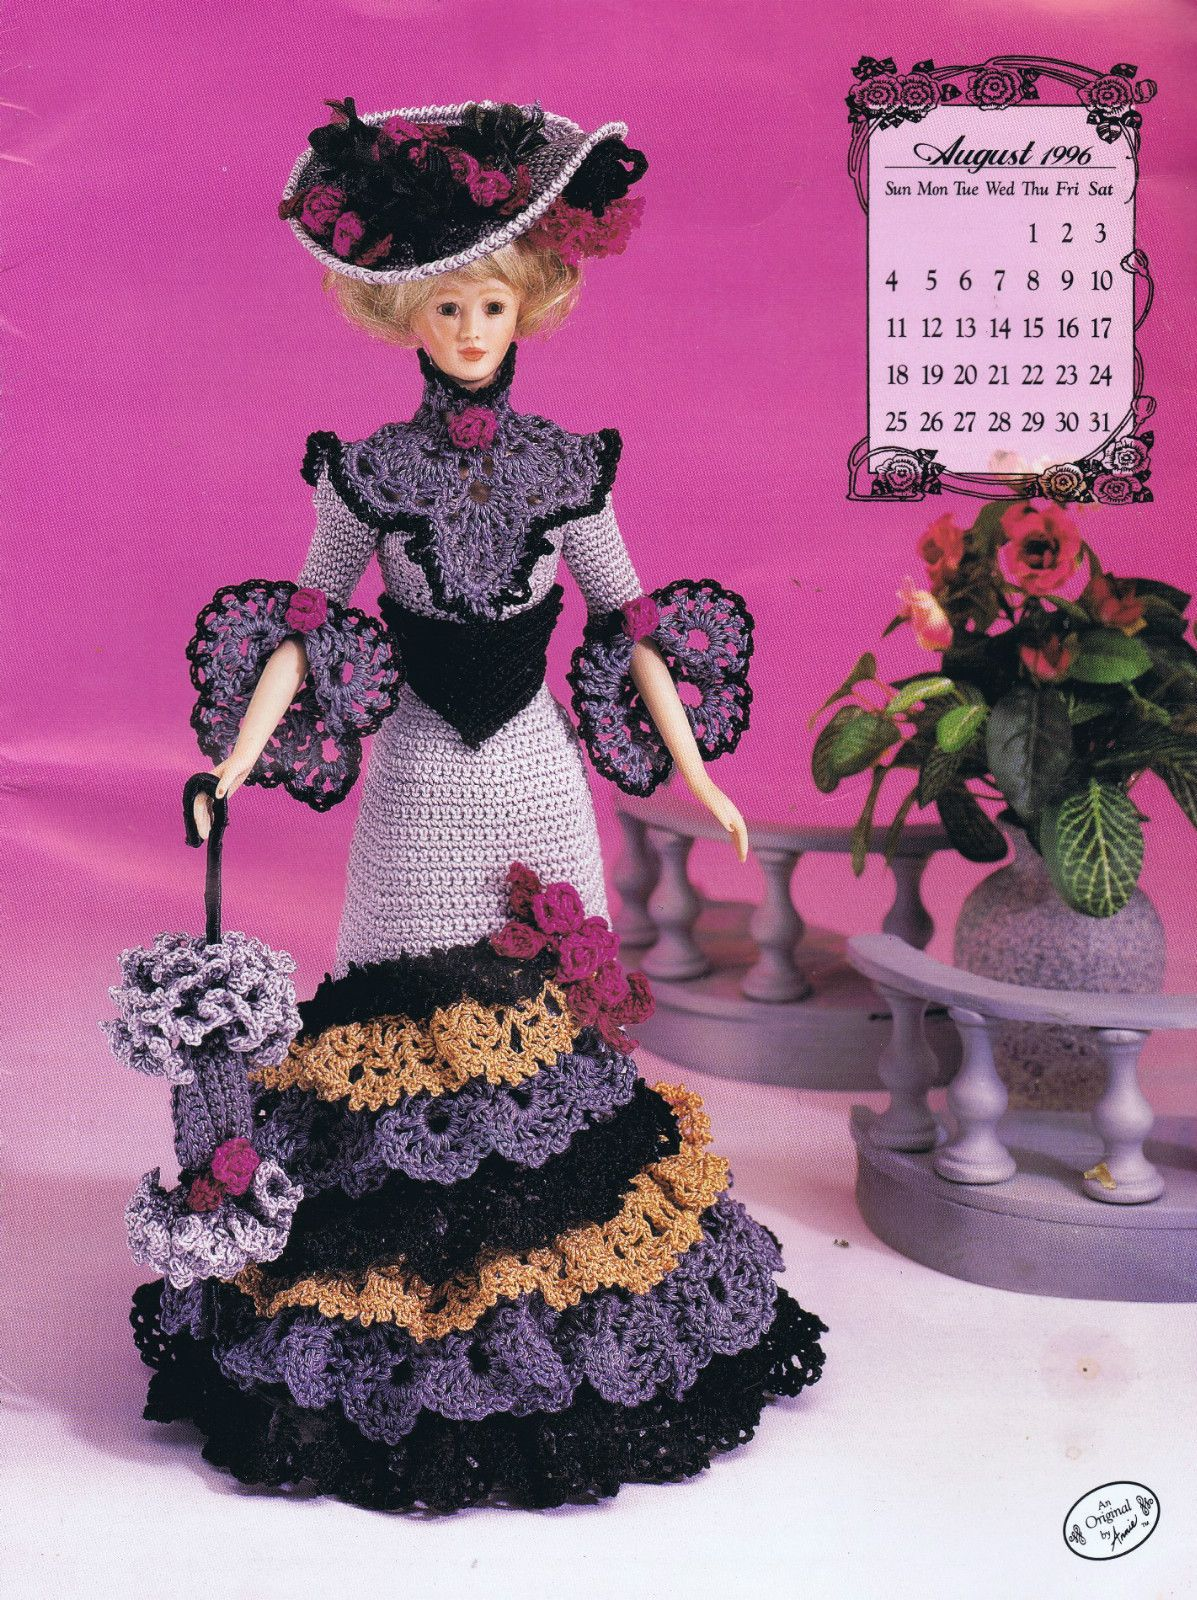 CROCHET PATTERN FASHION DOLL BARBIE SIZED MISS AUGUST AFTERNOON VISITING  COSTUME  4a92257359b